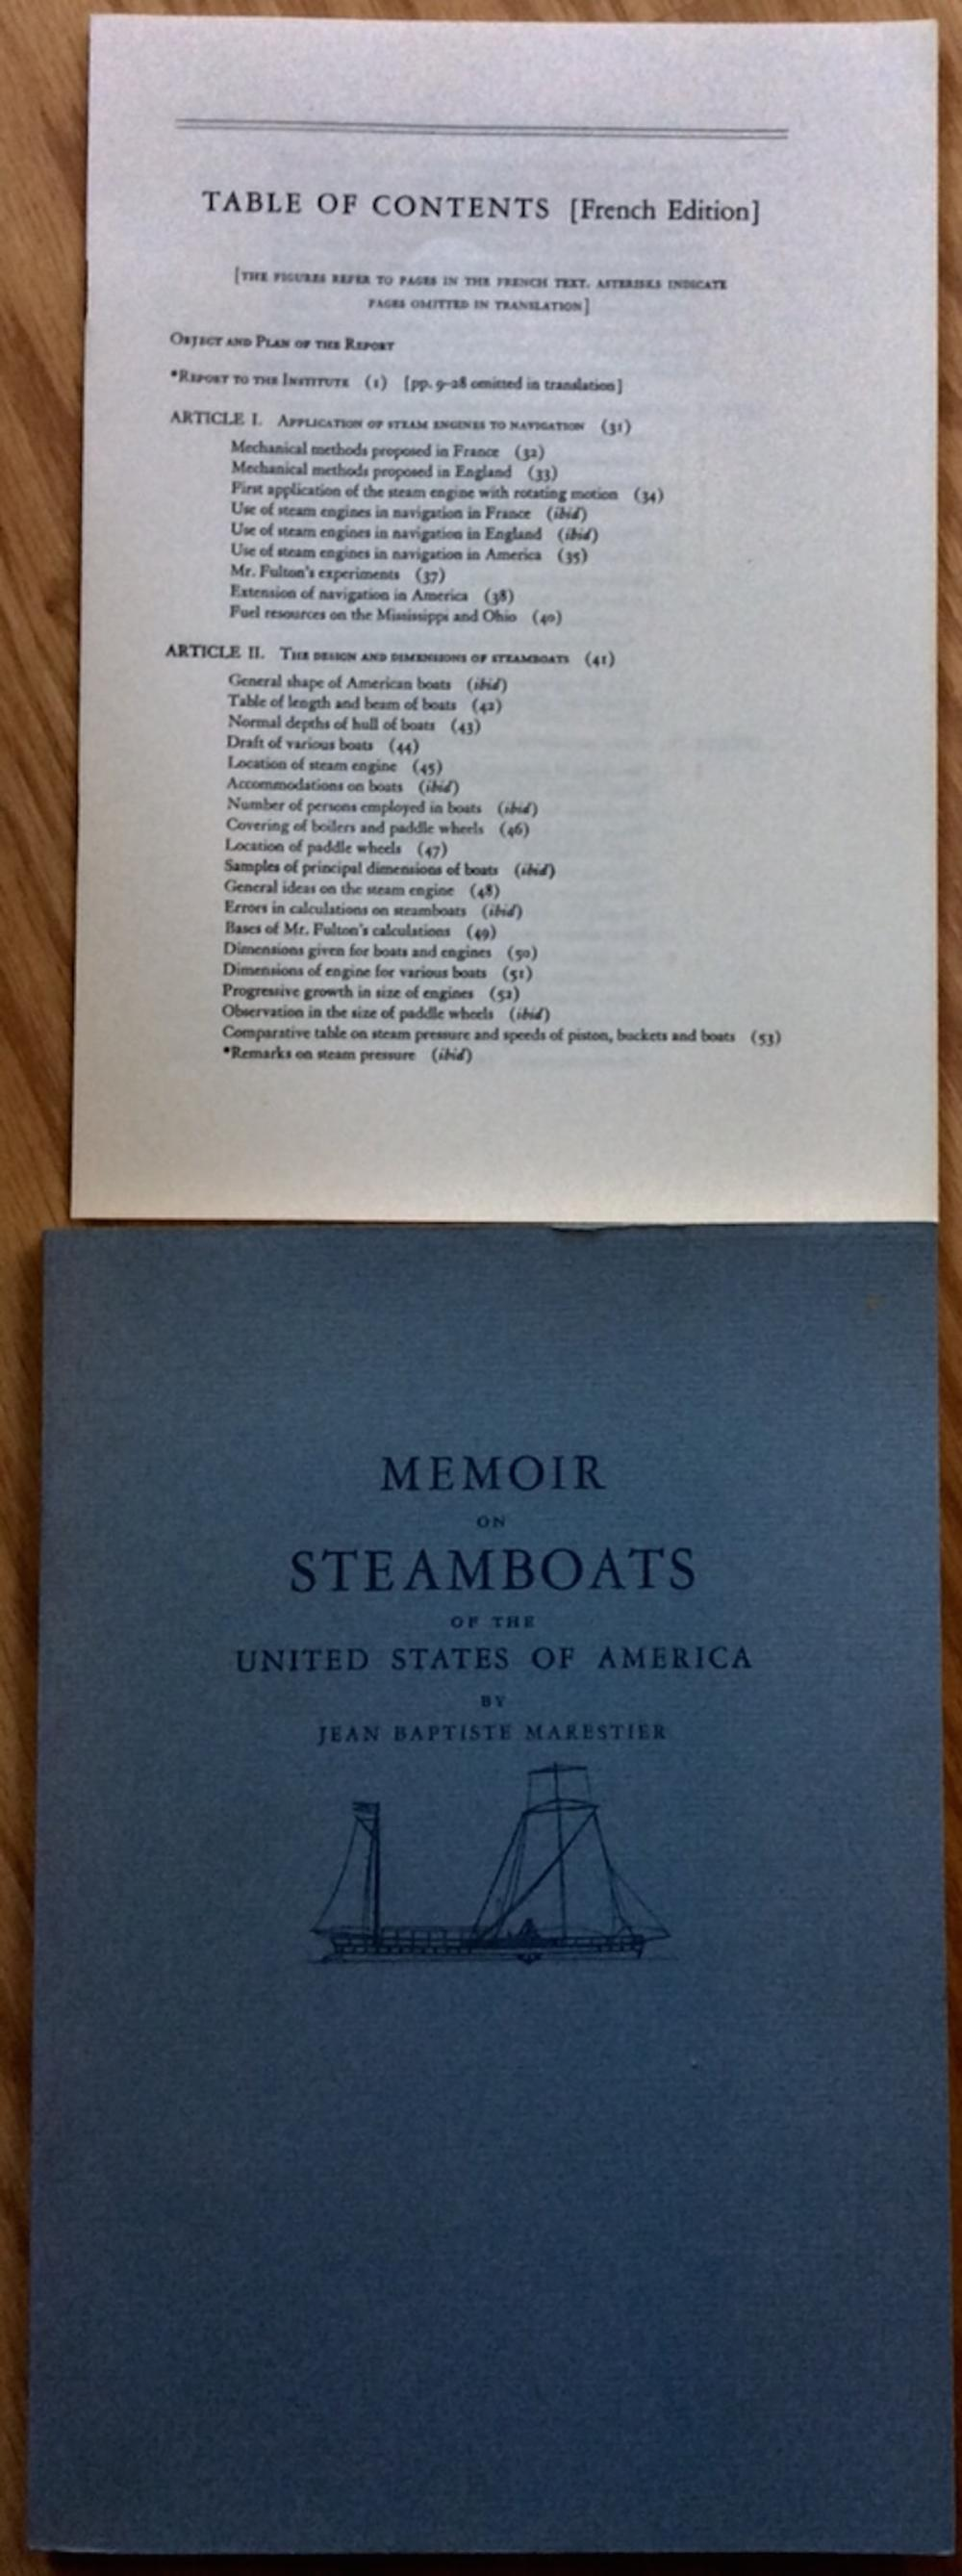 """Memoir On Steamboats Of The United States Of America"" by Jean Marestier VINTAGE 1957 Trade Paperback Nautical History Of Steamboat Development"